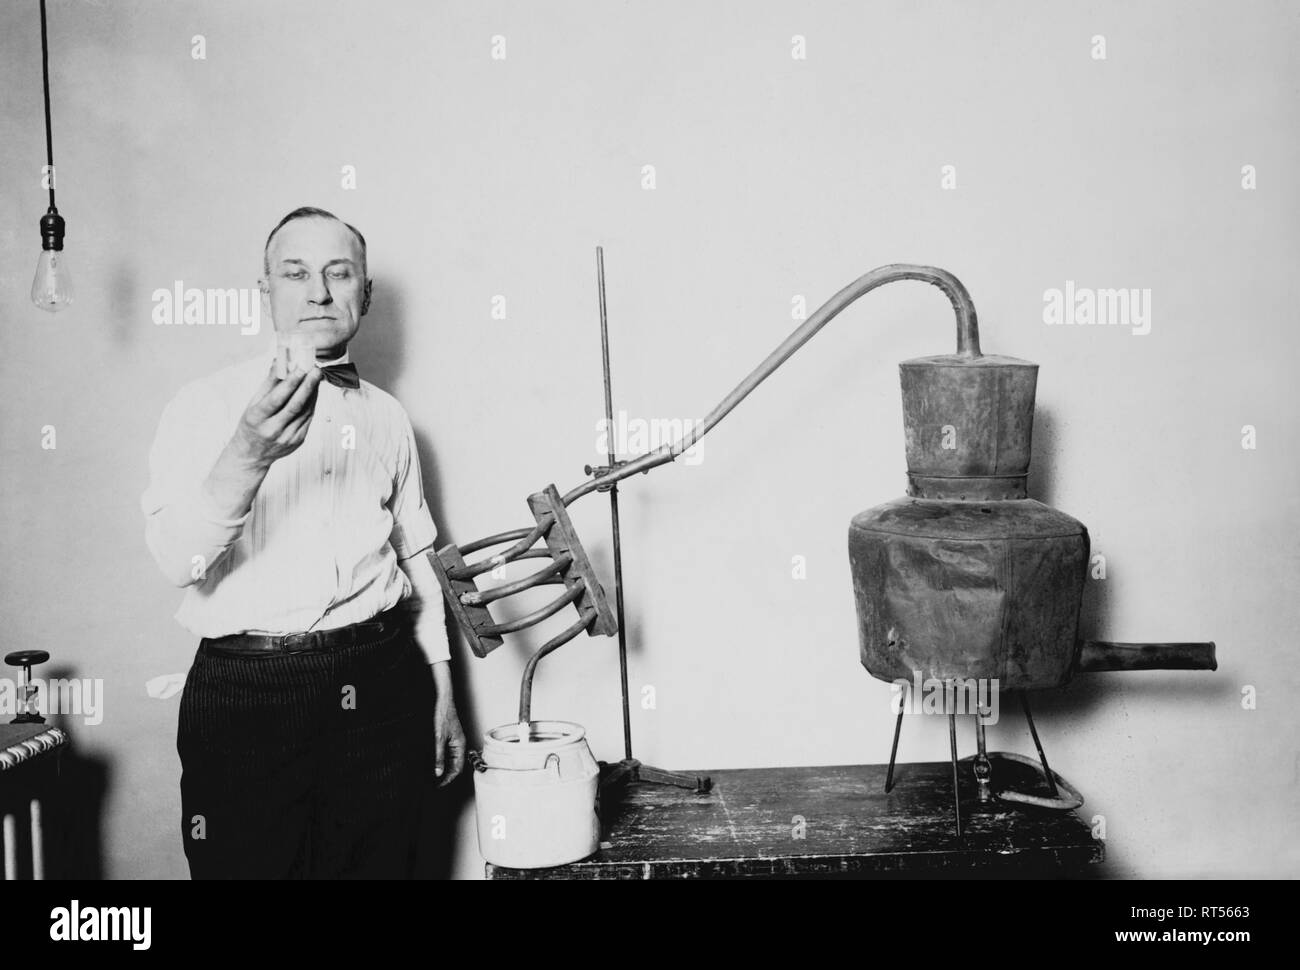 American history photograph showing a confiscated moonshine still. - Stock Image